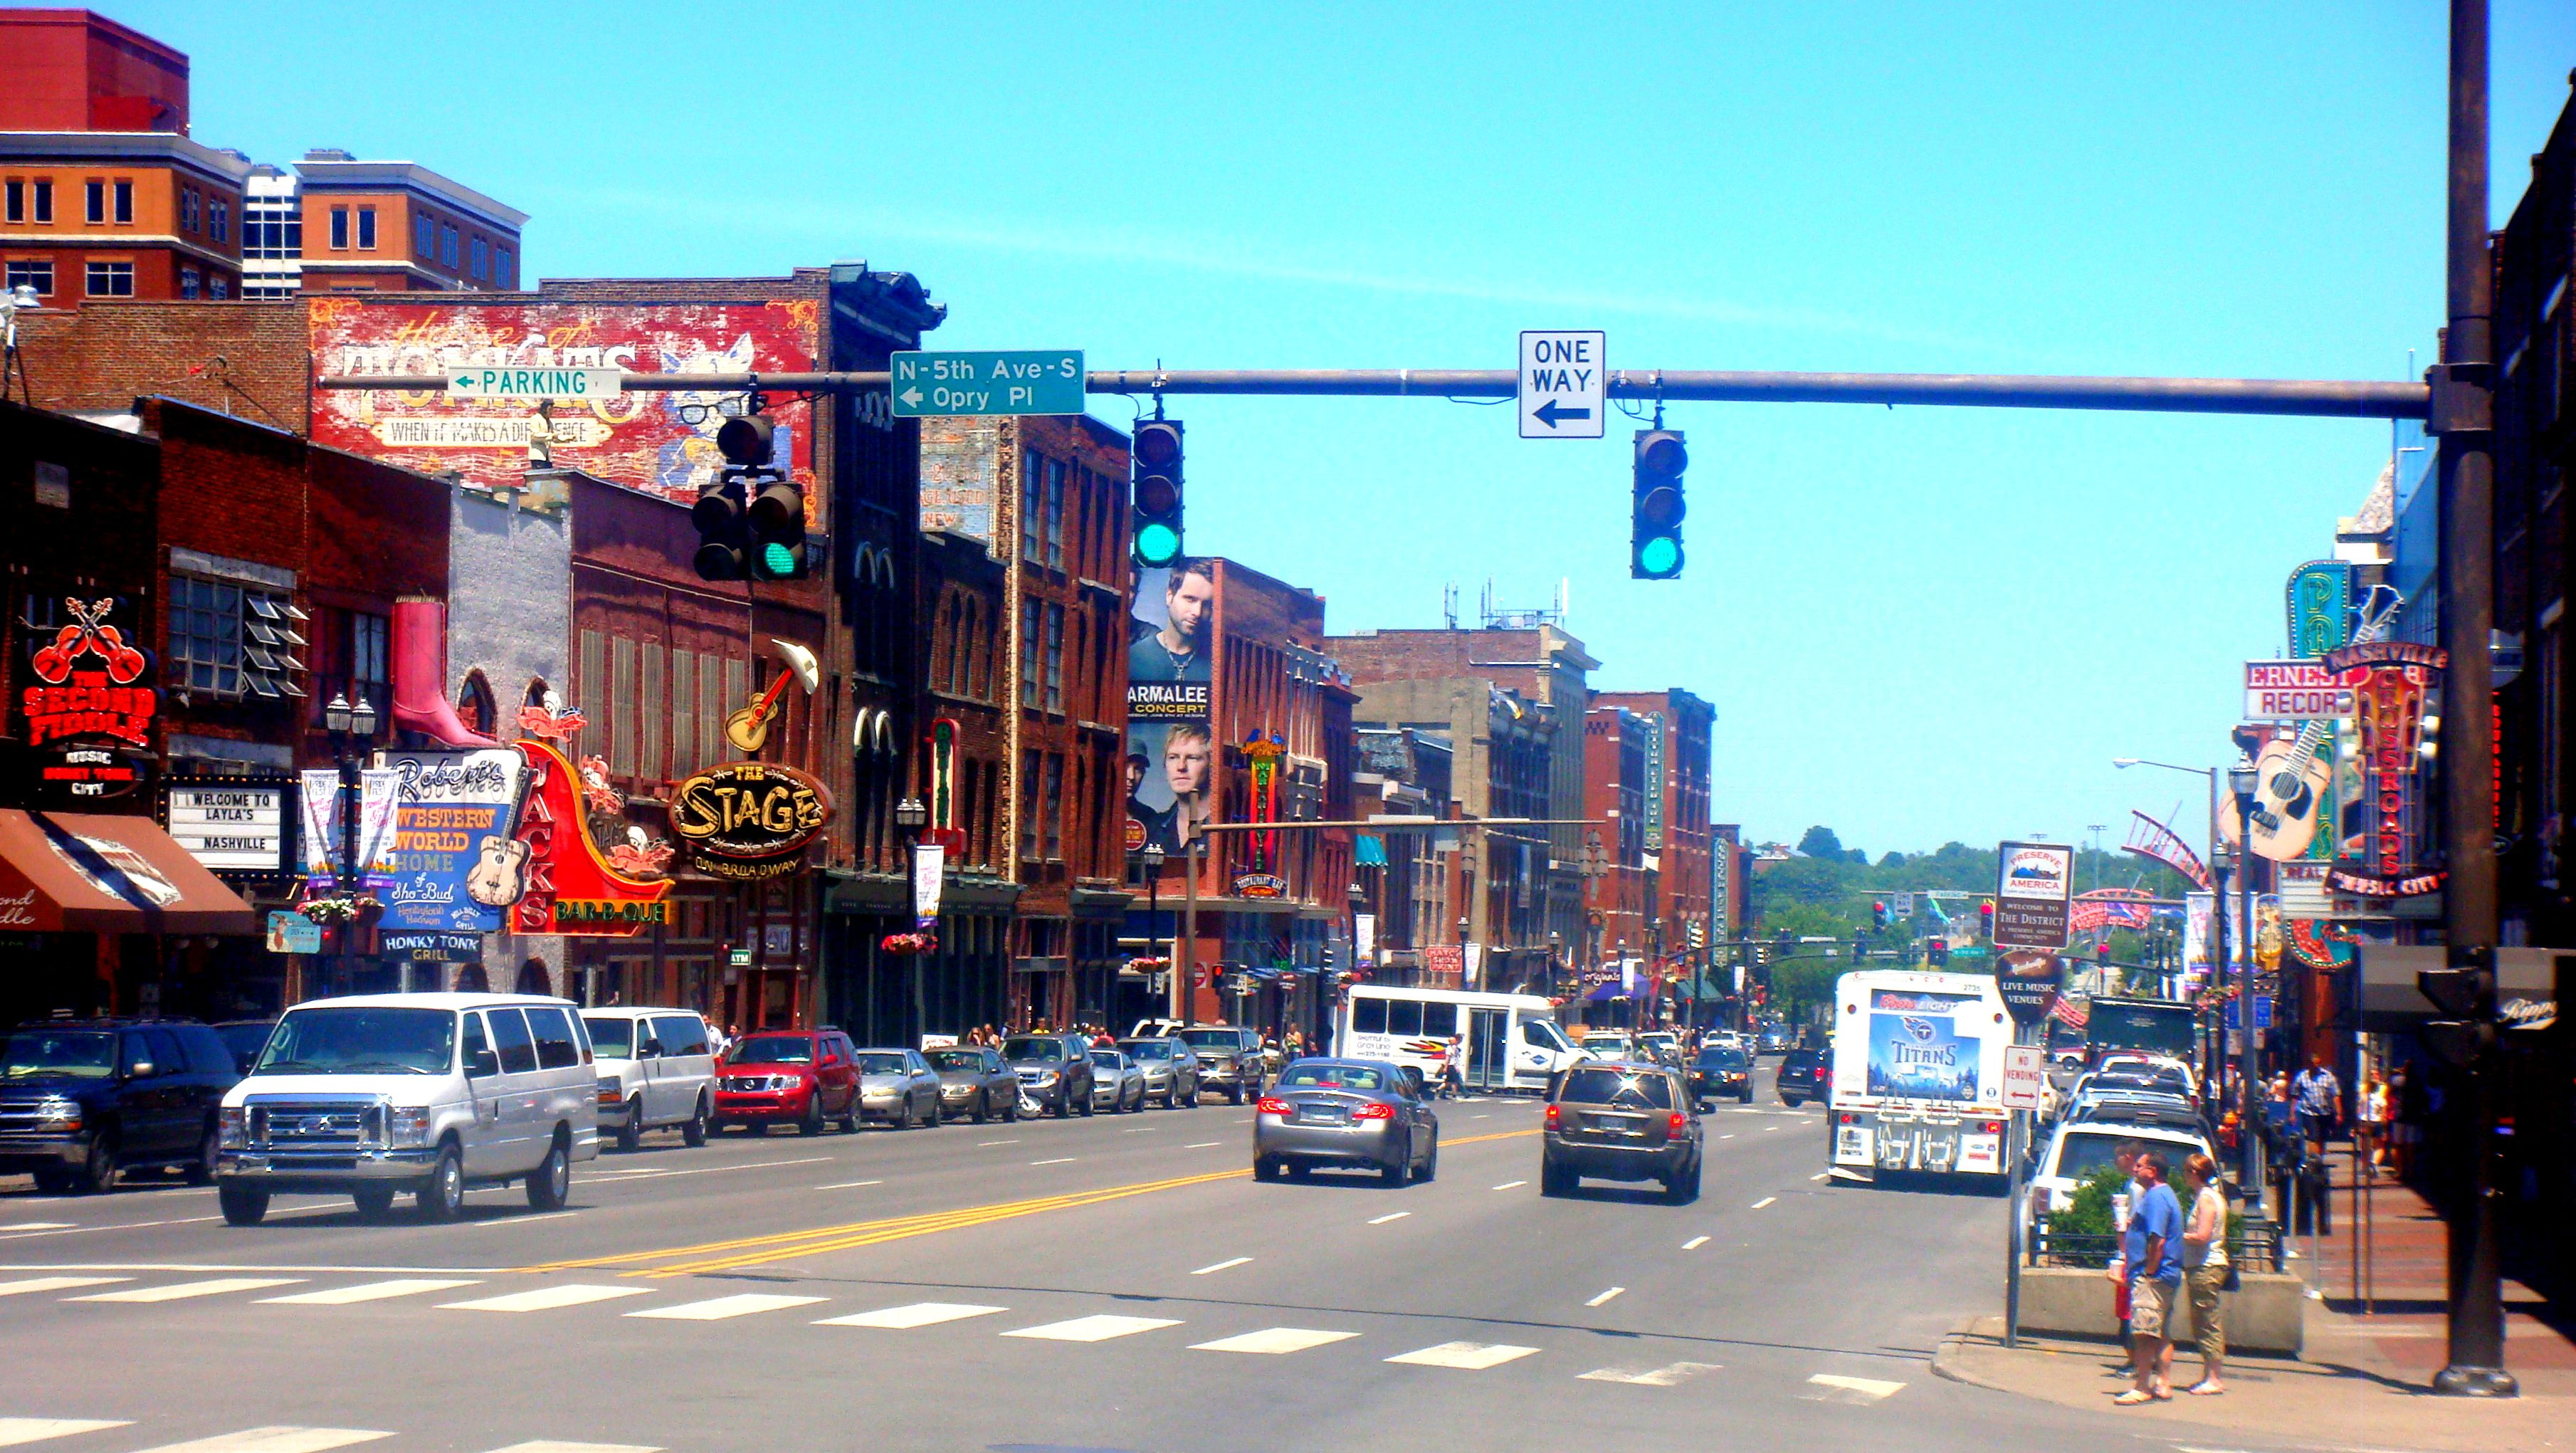 Downtown Nashville, Tennessee August 2013 trip was a